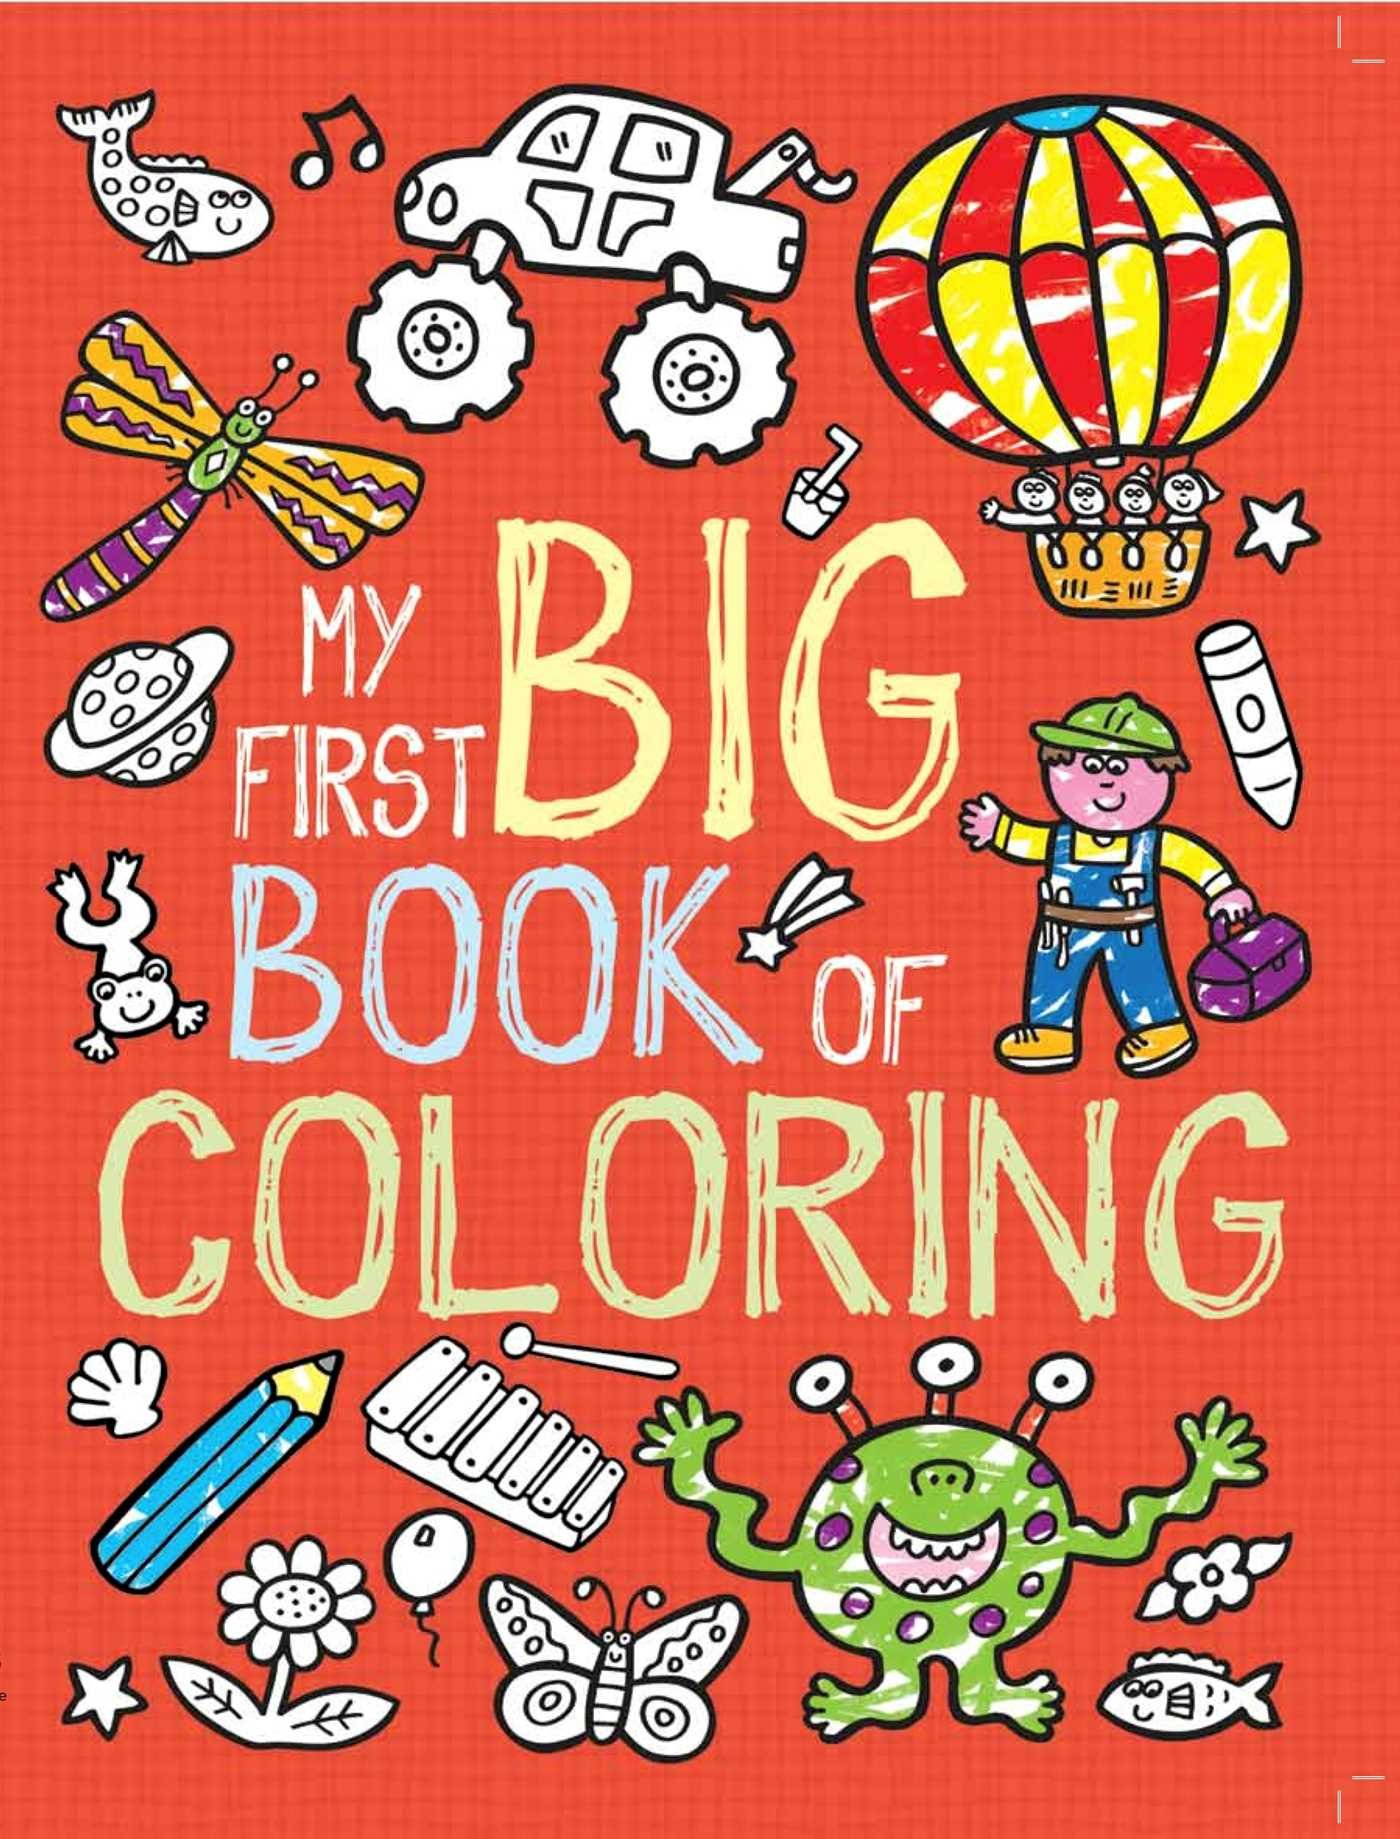 My First Big Book Coloring product image